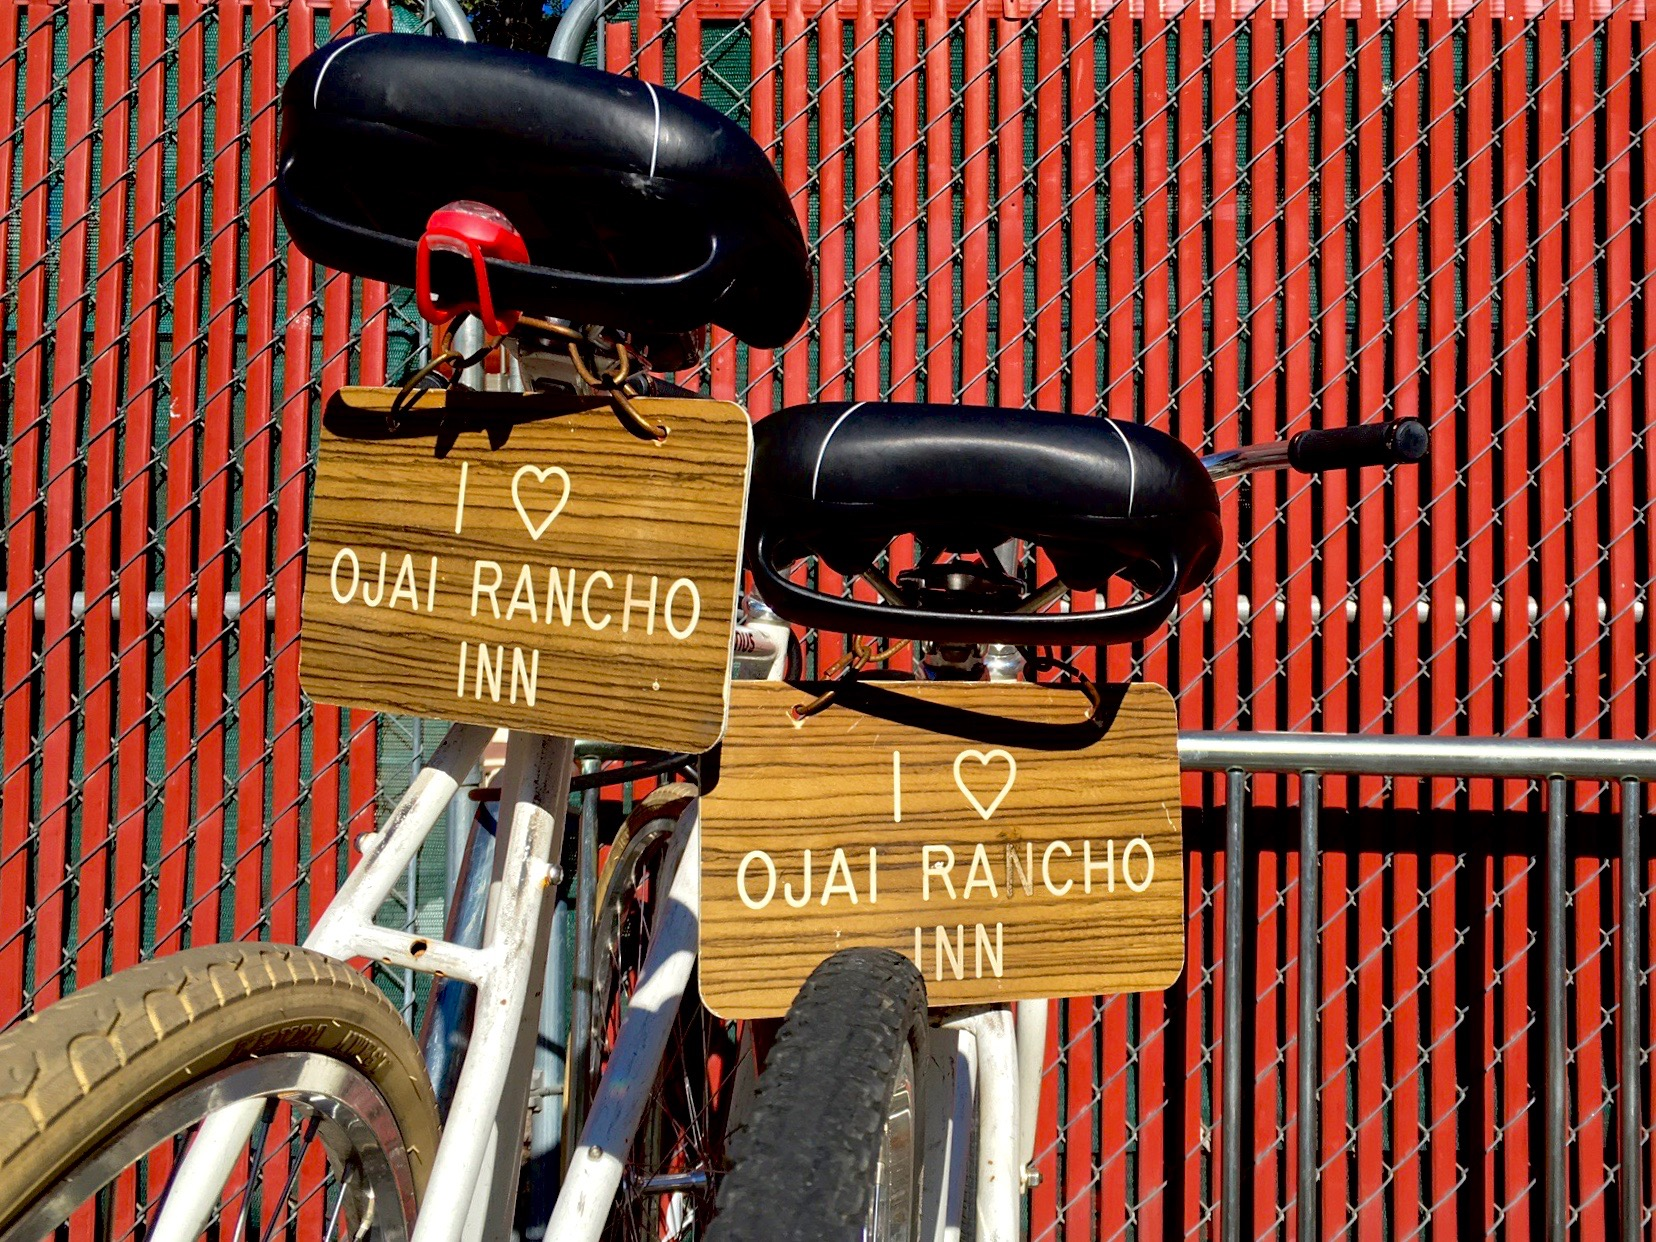 Ojai Rancho Inn's bicycles, Ojai California - 3 Days*